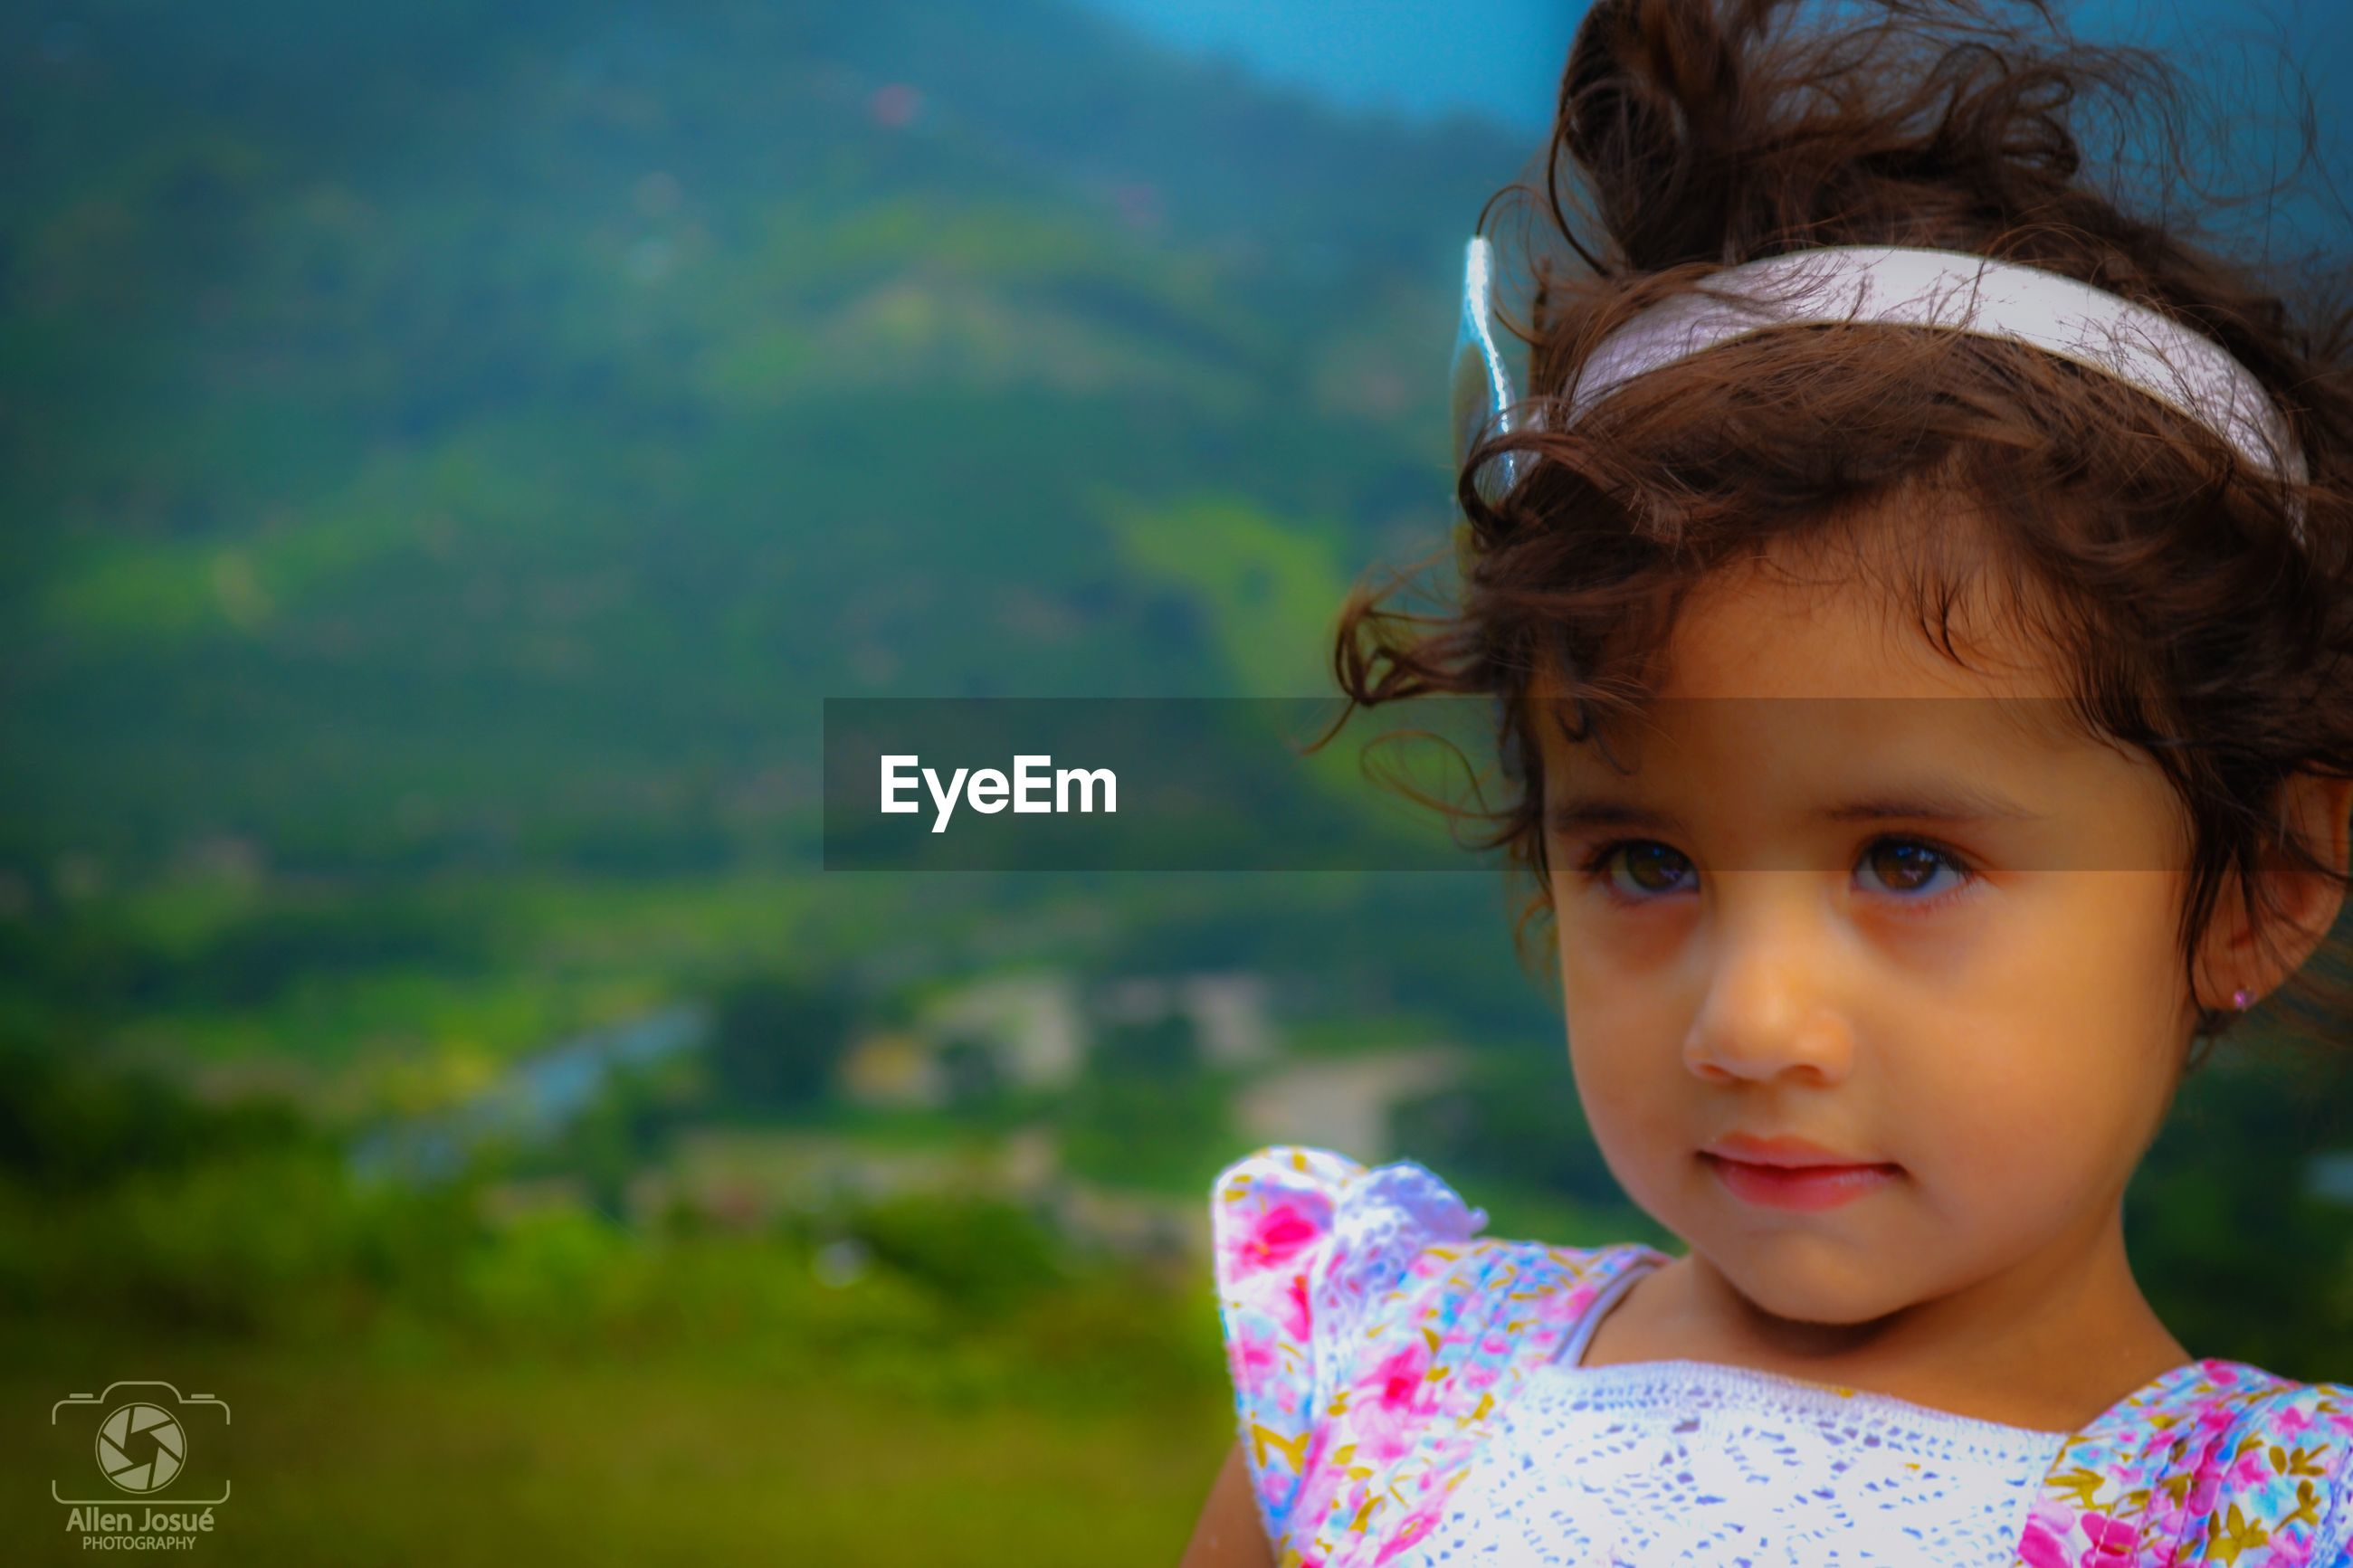 childhood, real people, focus on foreground, girls, innocence, one person, elementary age, outdoors, day, cute, lifestyles, headshot, leisure activity, looking at camera, close-up, portrait, nature, sky